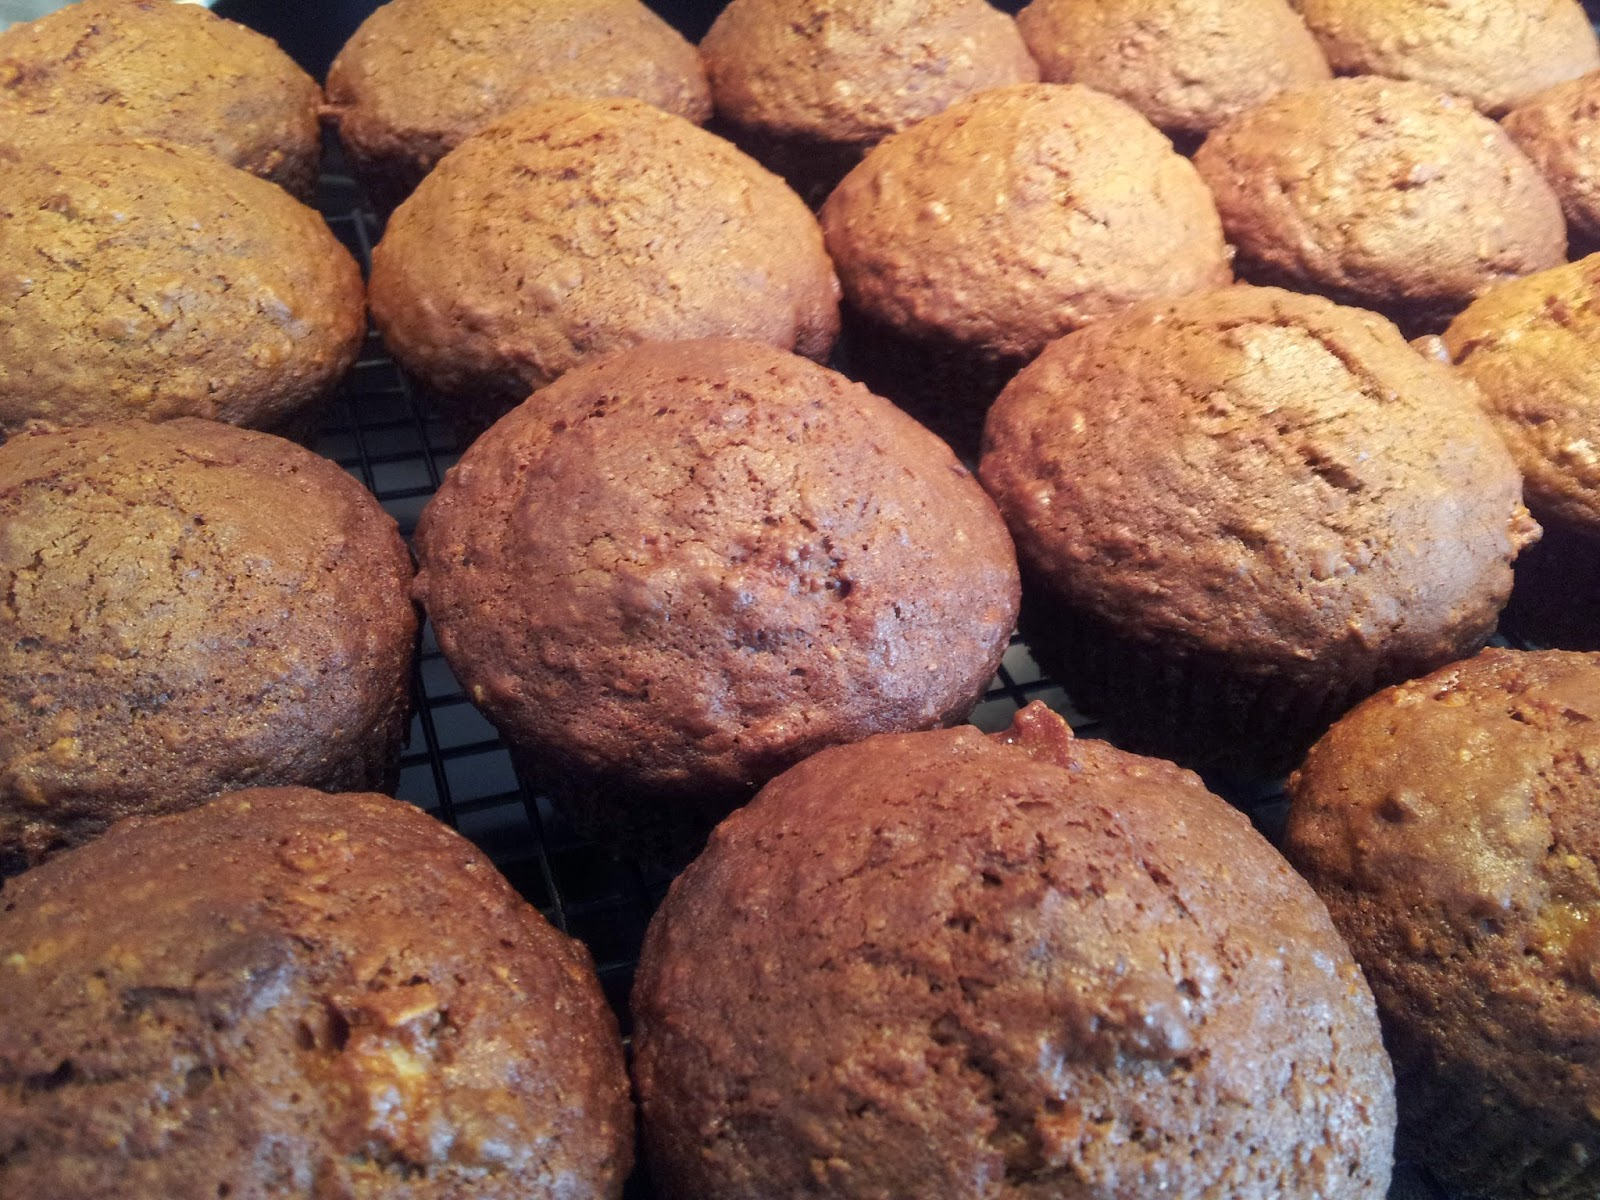 Apple cinnamon oat bran muffins, baking, healthy snacks